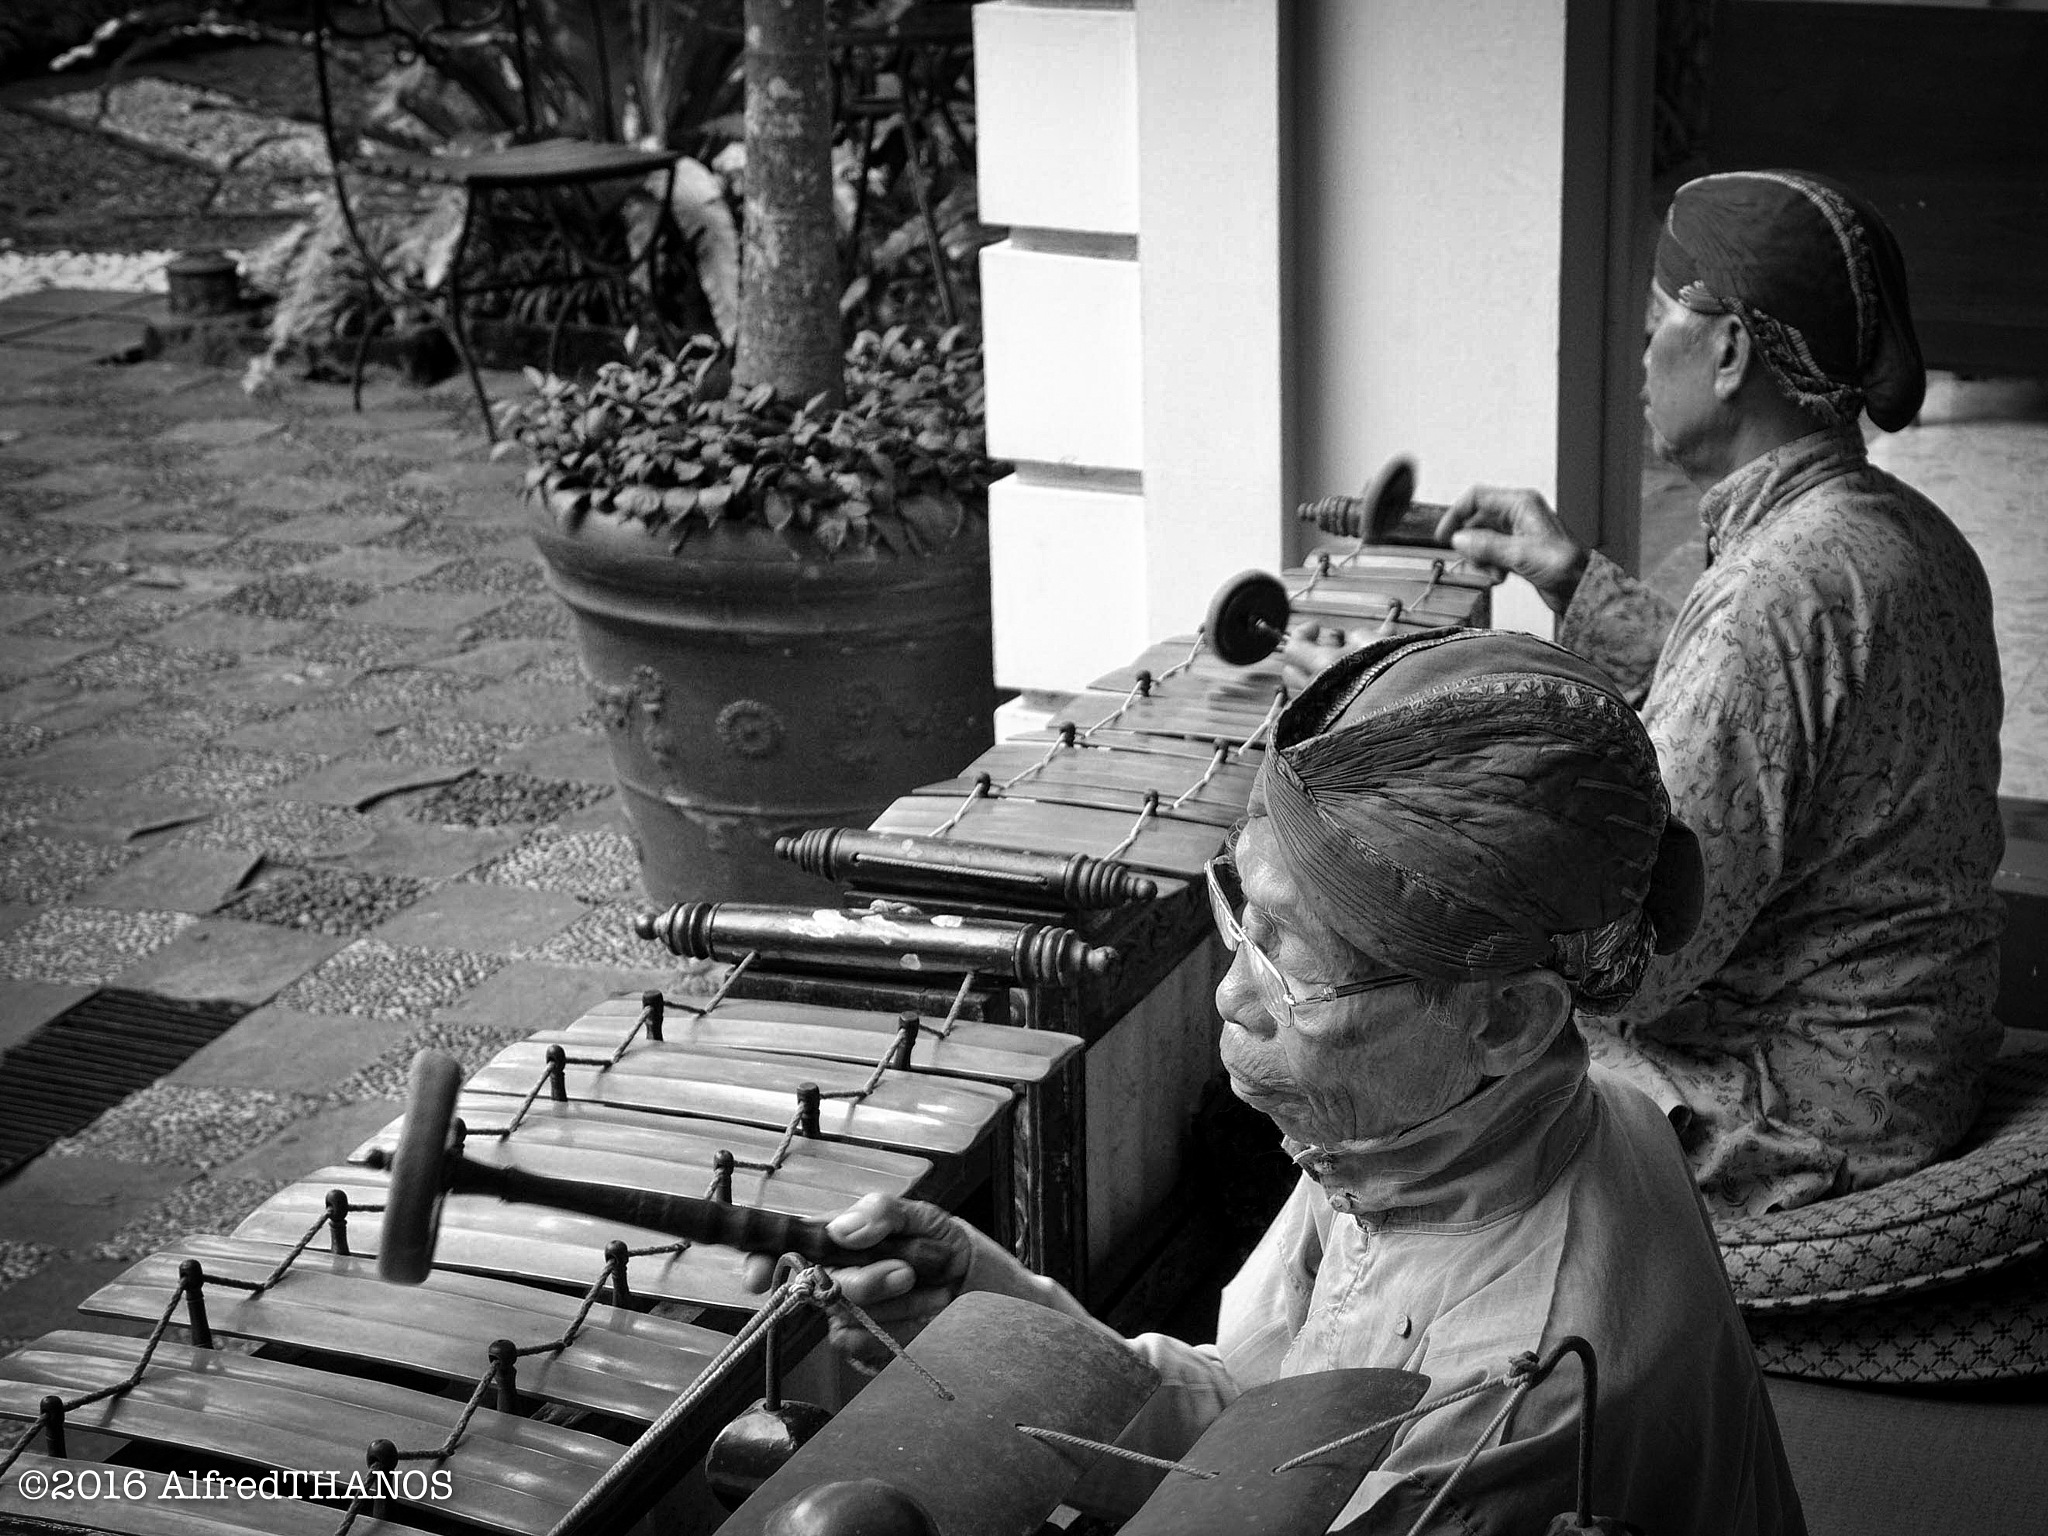 gamelan players 2 by alfredthanos